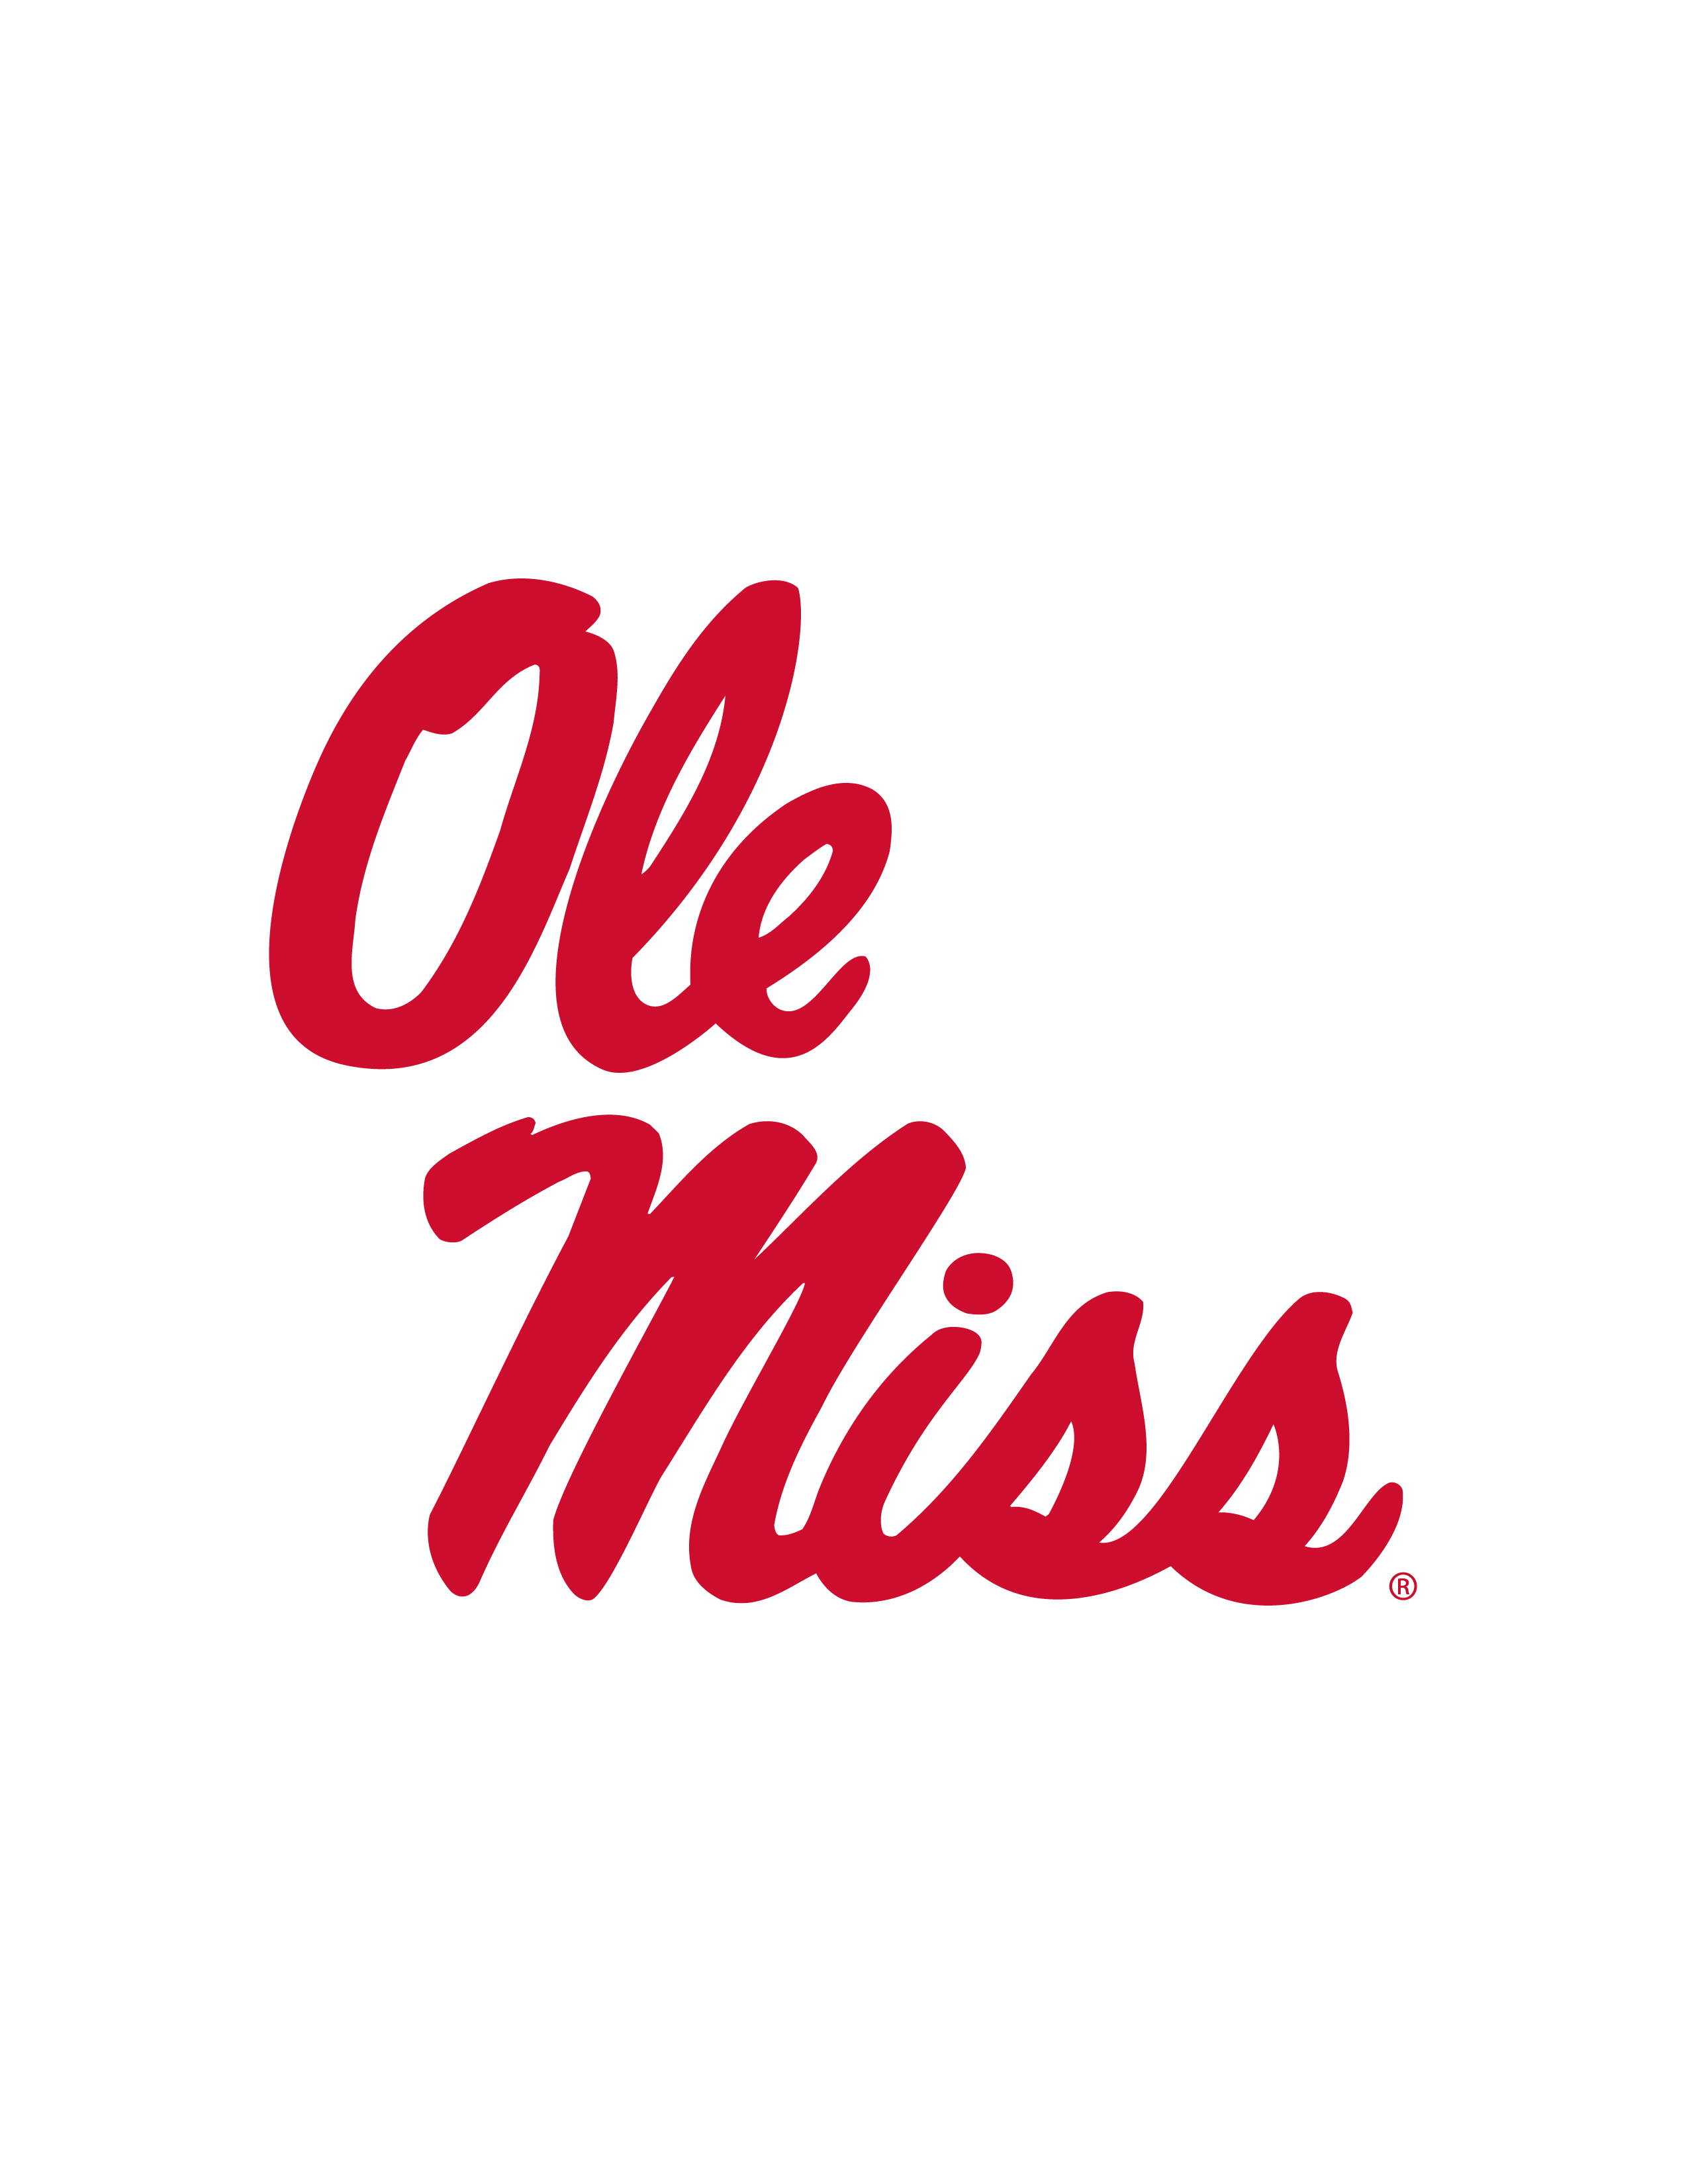 Ole miss gameday colors 2015 - 15 Ole Miss Routs Ut Martin In Season Opener